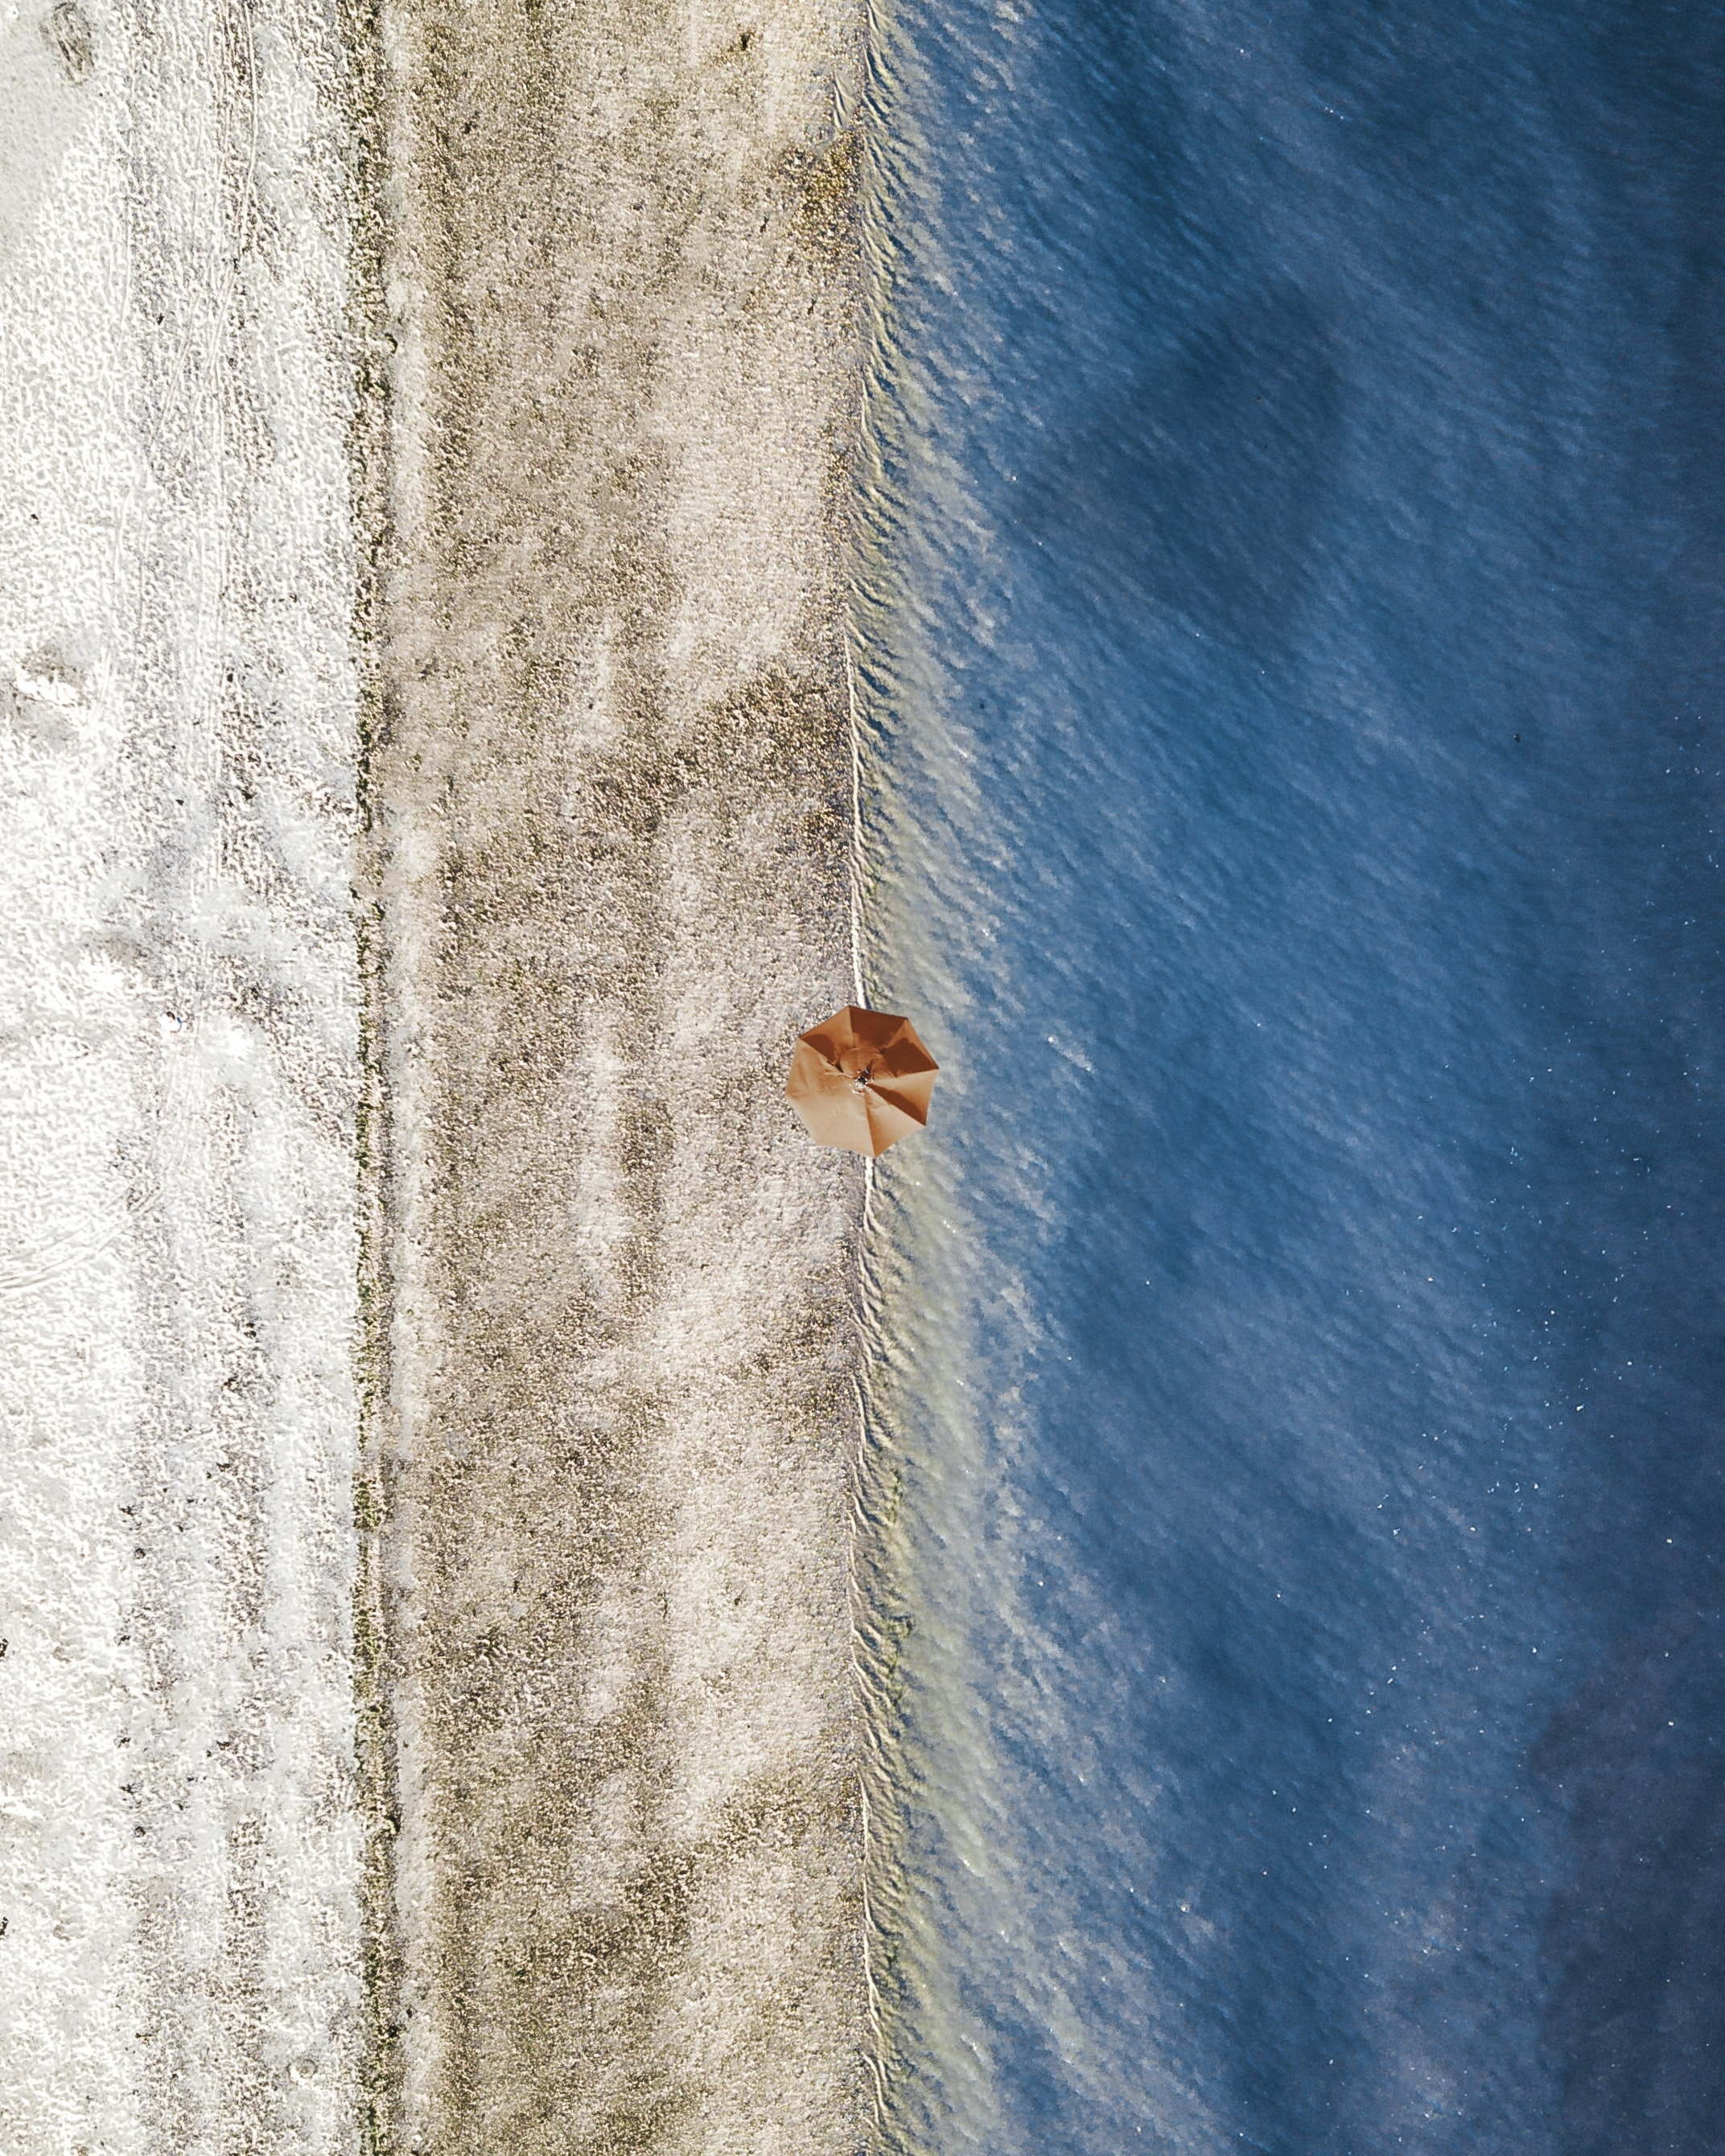 aerial photograph of orange umbrella near body of water